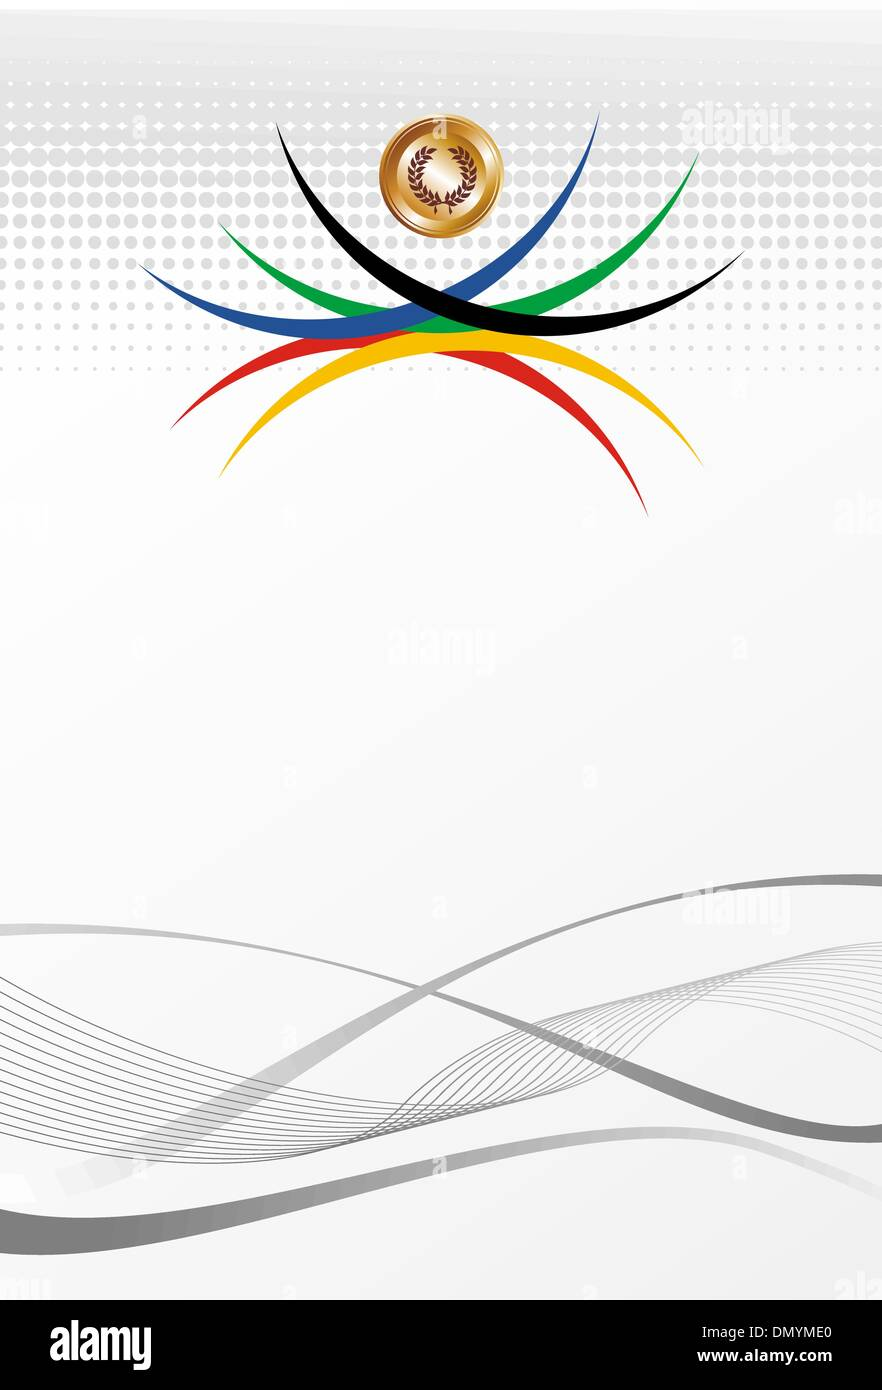 Olympic games gold medal abstract background - Stock Vector